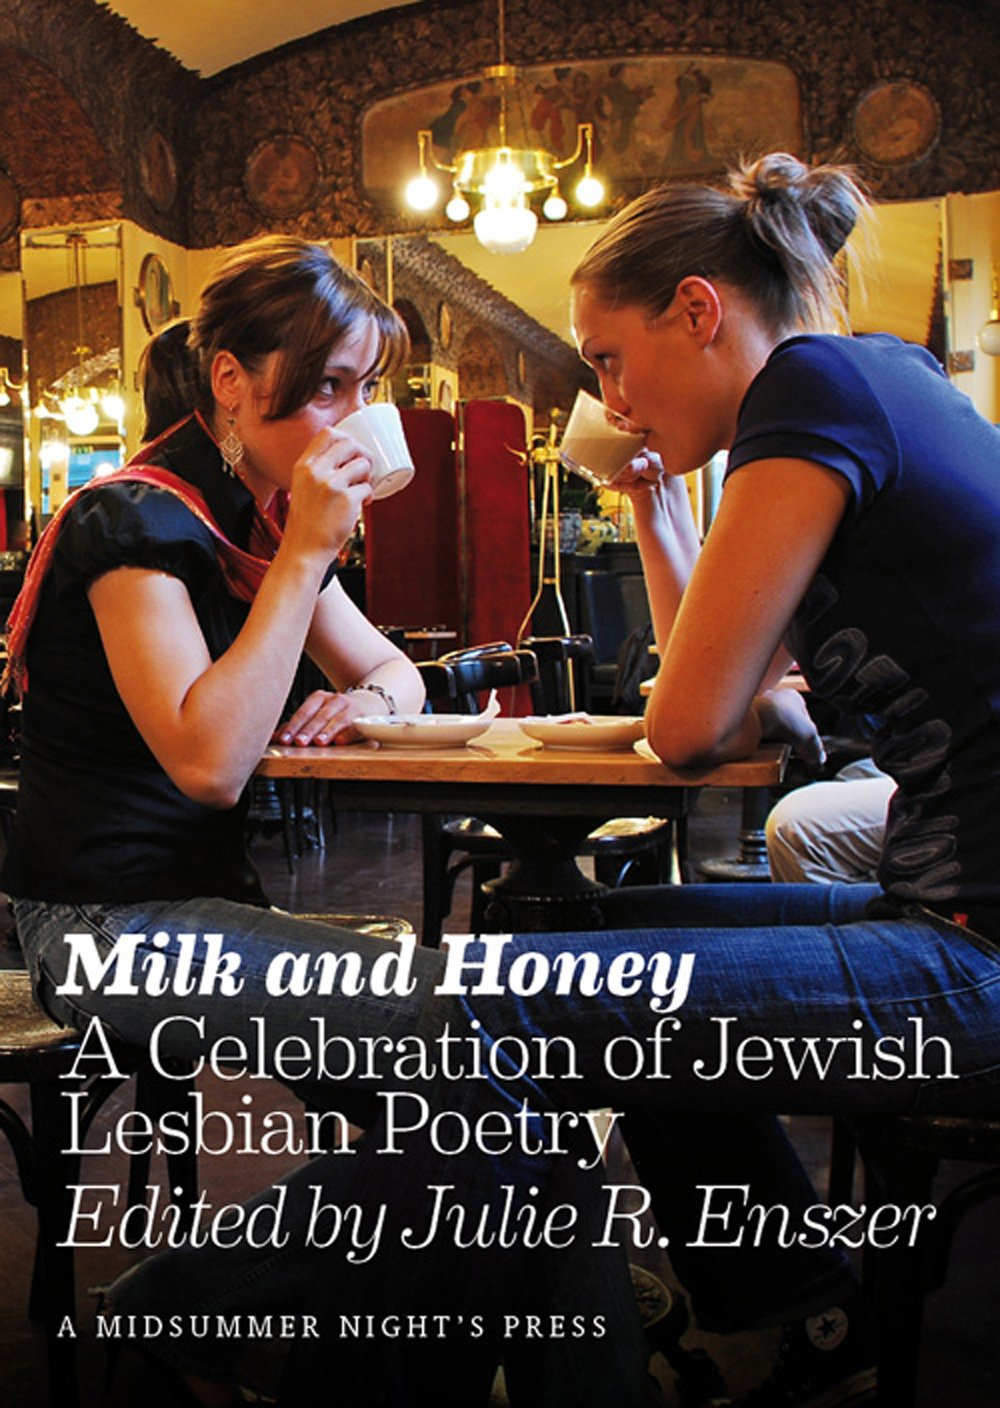 Milk and Honey: A Celebration of Jewish Lesbian Poetry (Body Language) by A Midsummer Night's Press